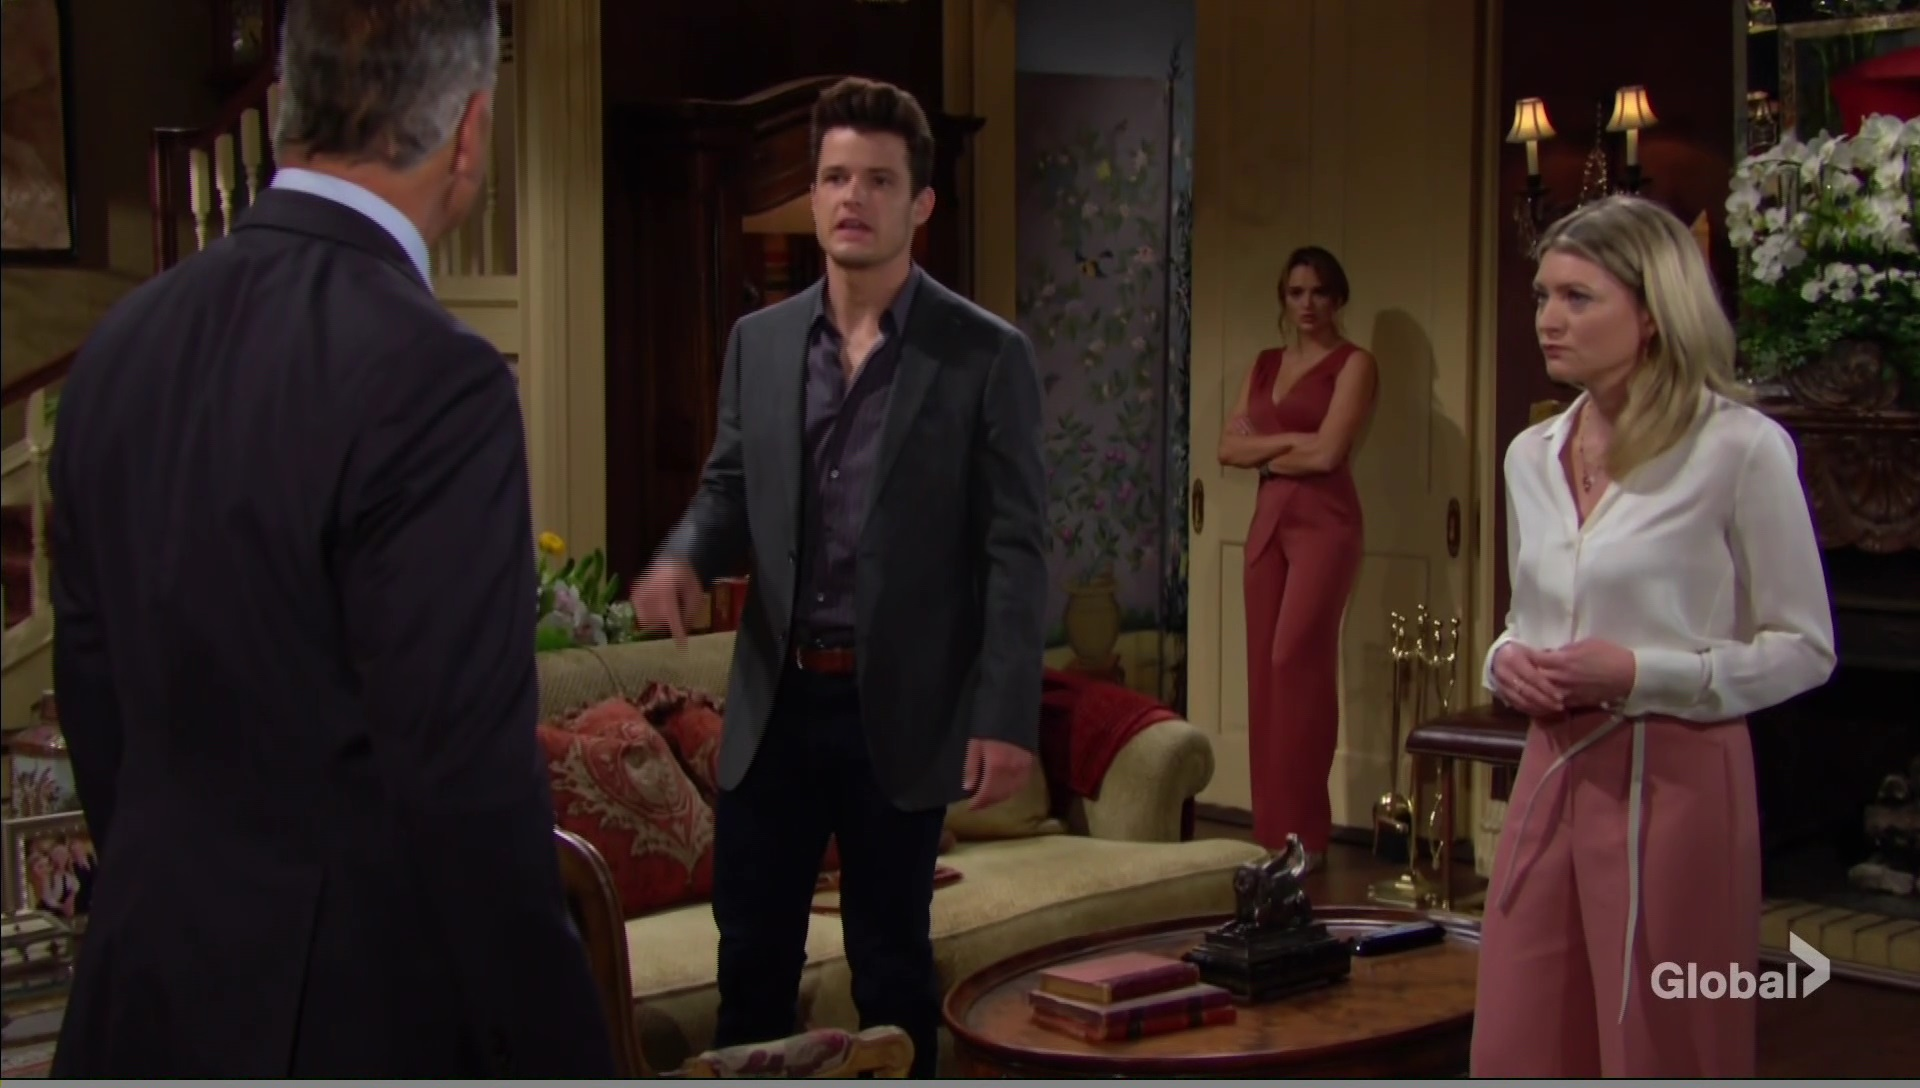 ashland wants see son young restless